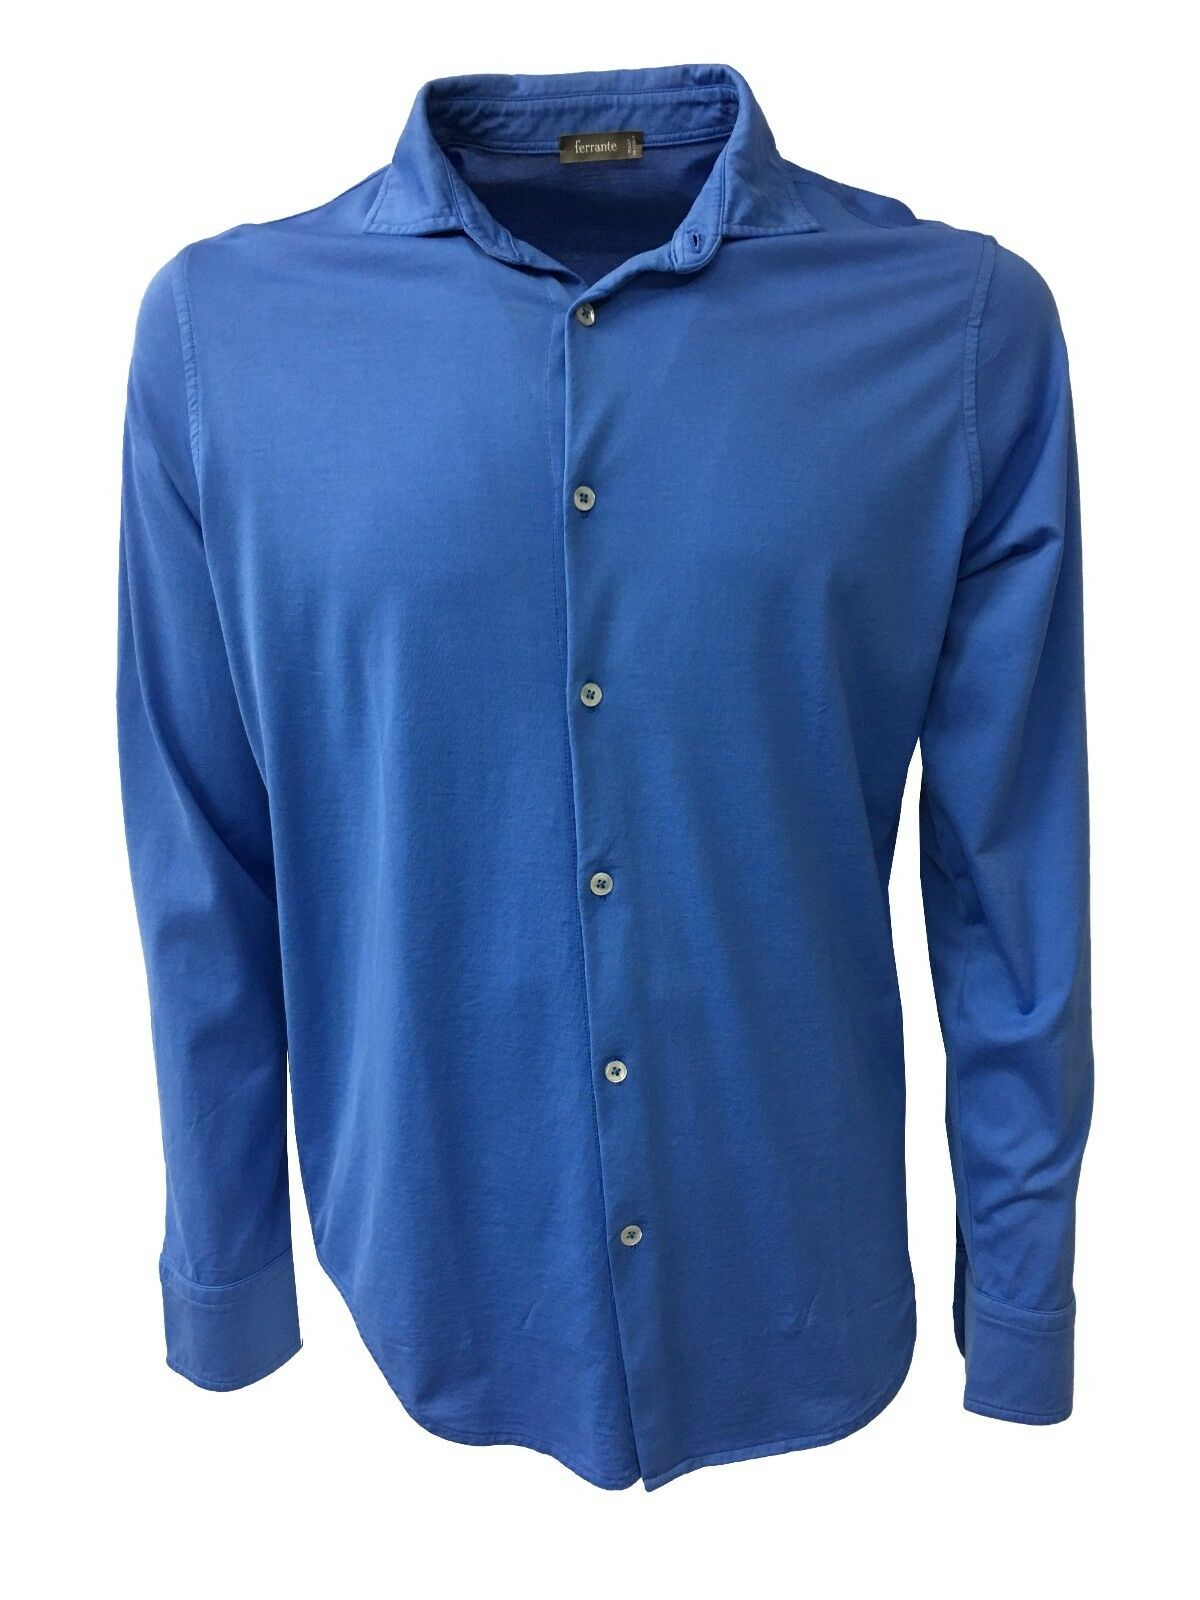 FERRANTE men's long sleeve shirt 100% cotton MADE IN ITALY 32611